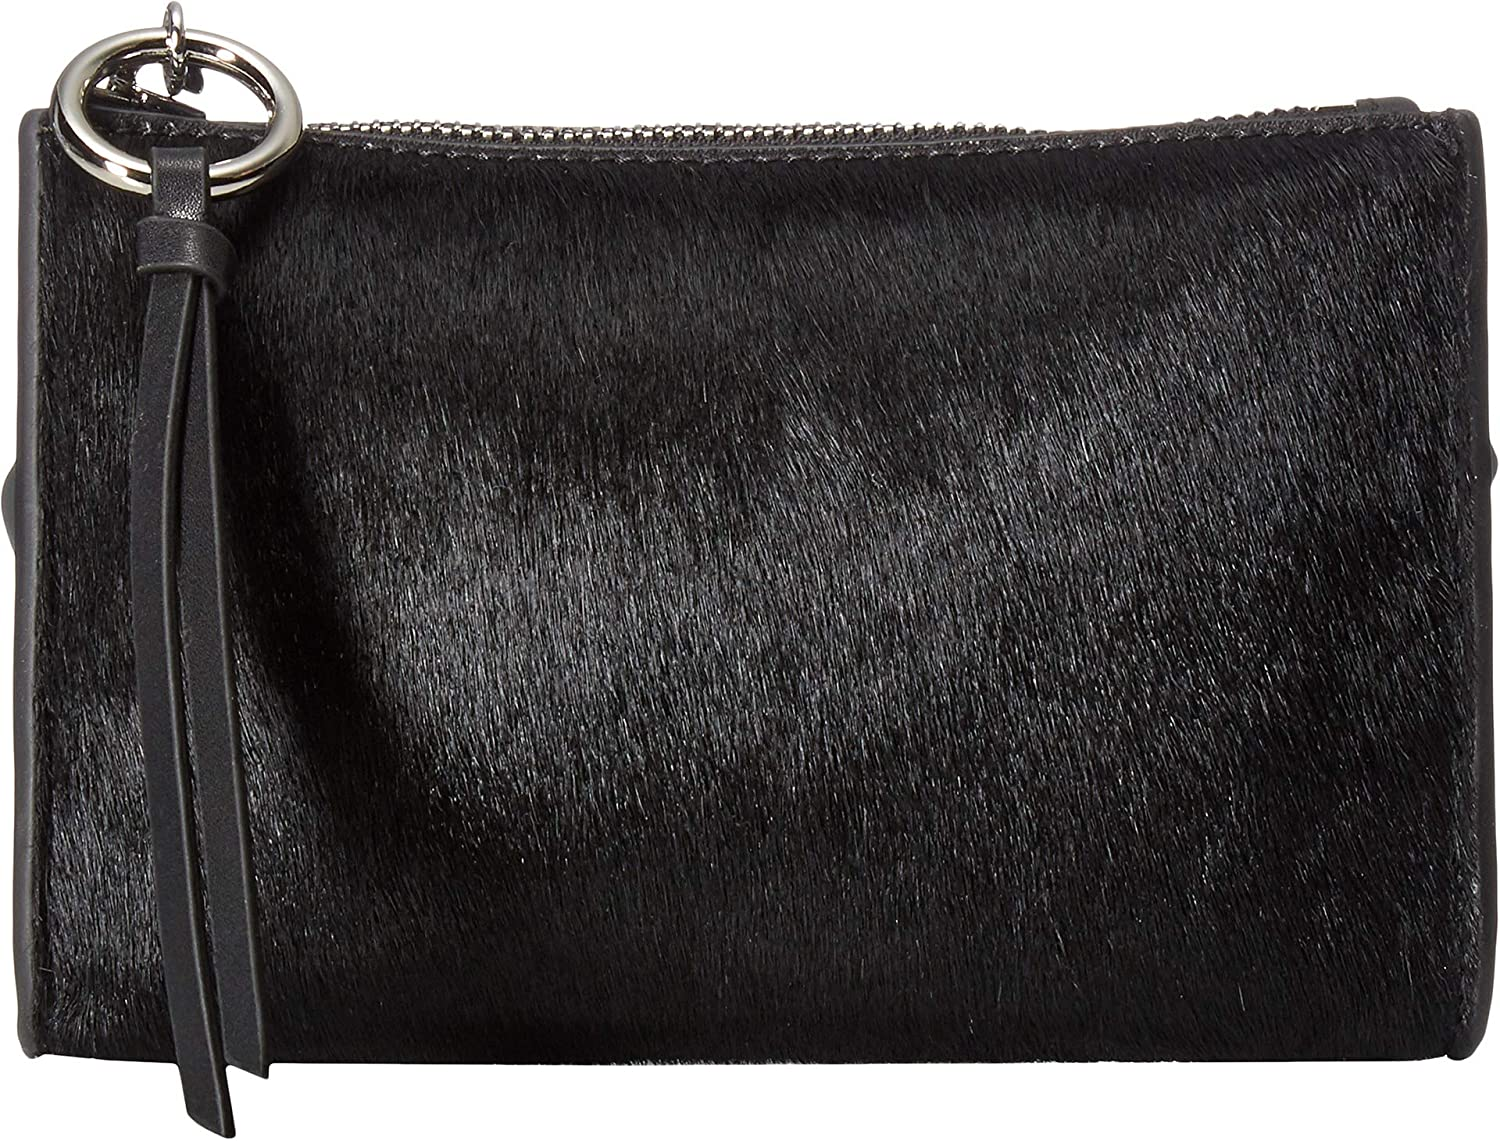 Rebecca Minkoff Women's 25 mm Exotic Belt Bag Black/Nickel MD